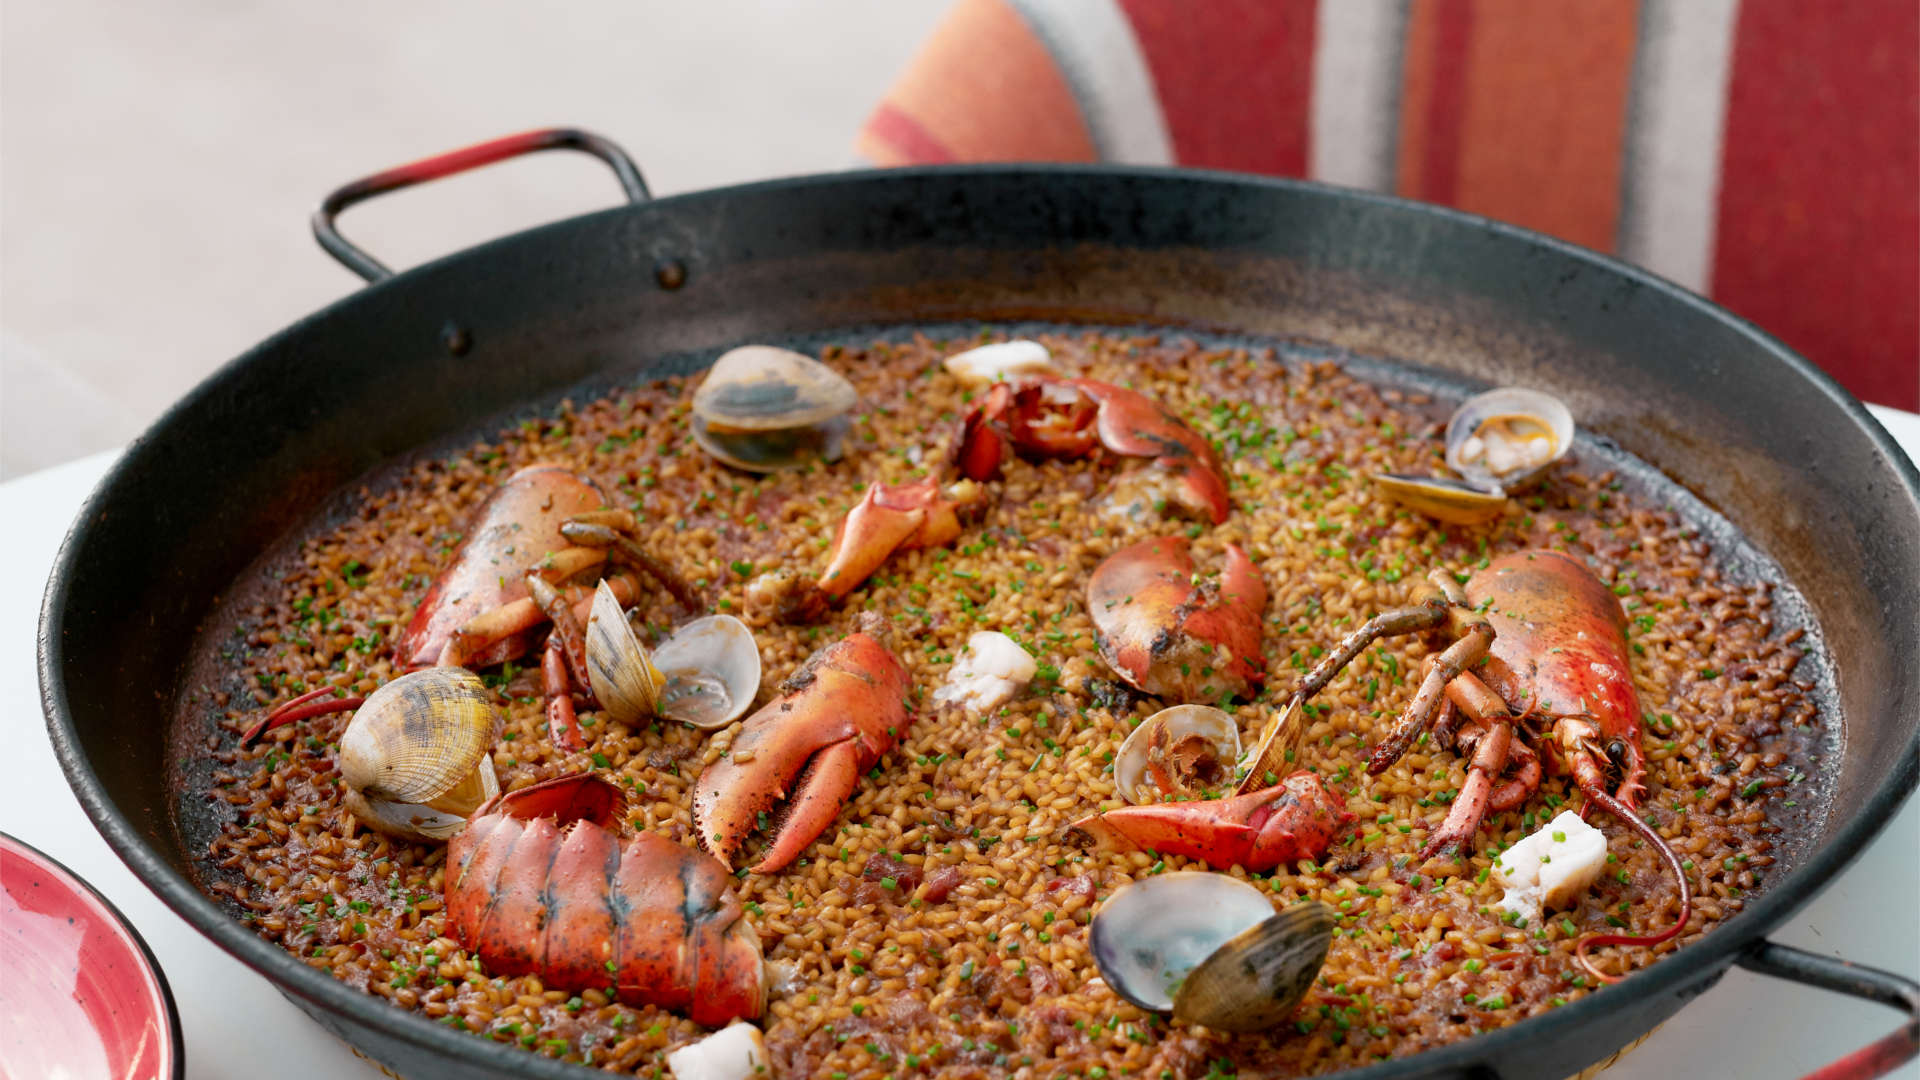 Lobster Paella in La Barceloneta - Mana 75